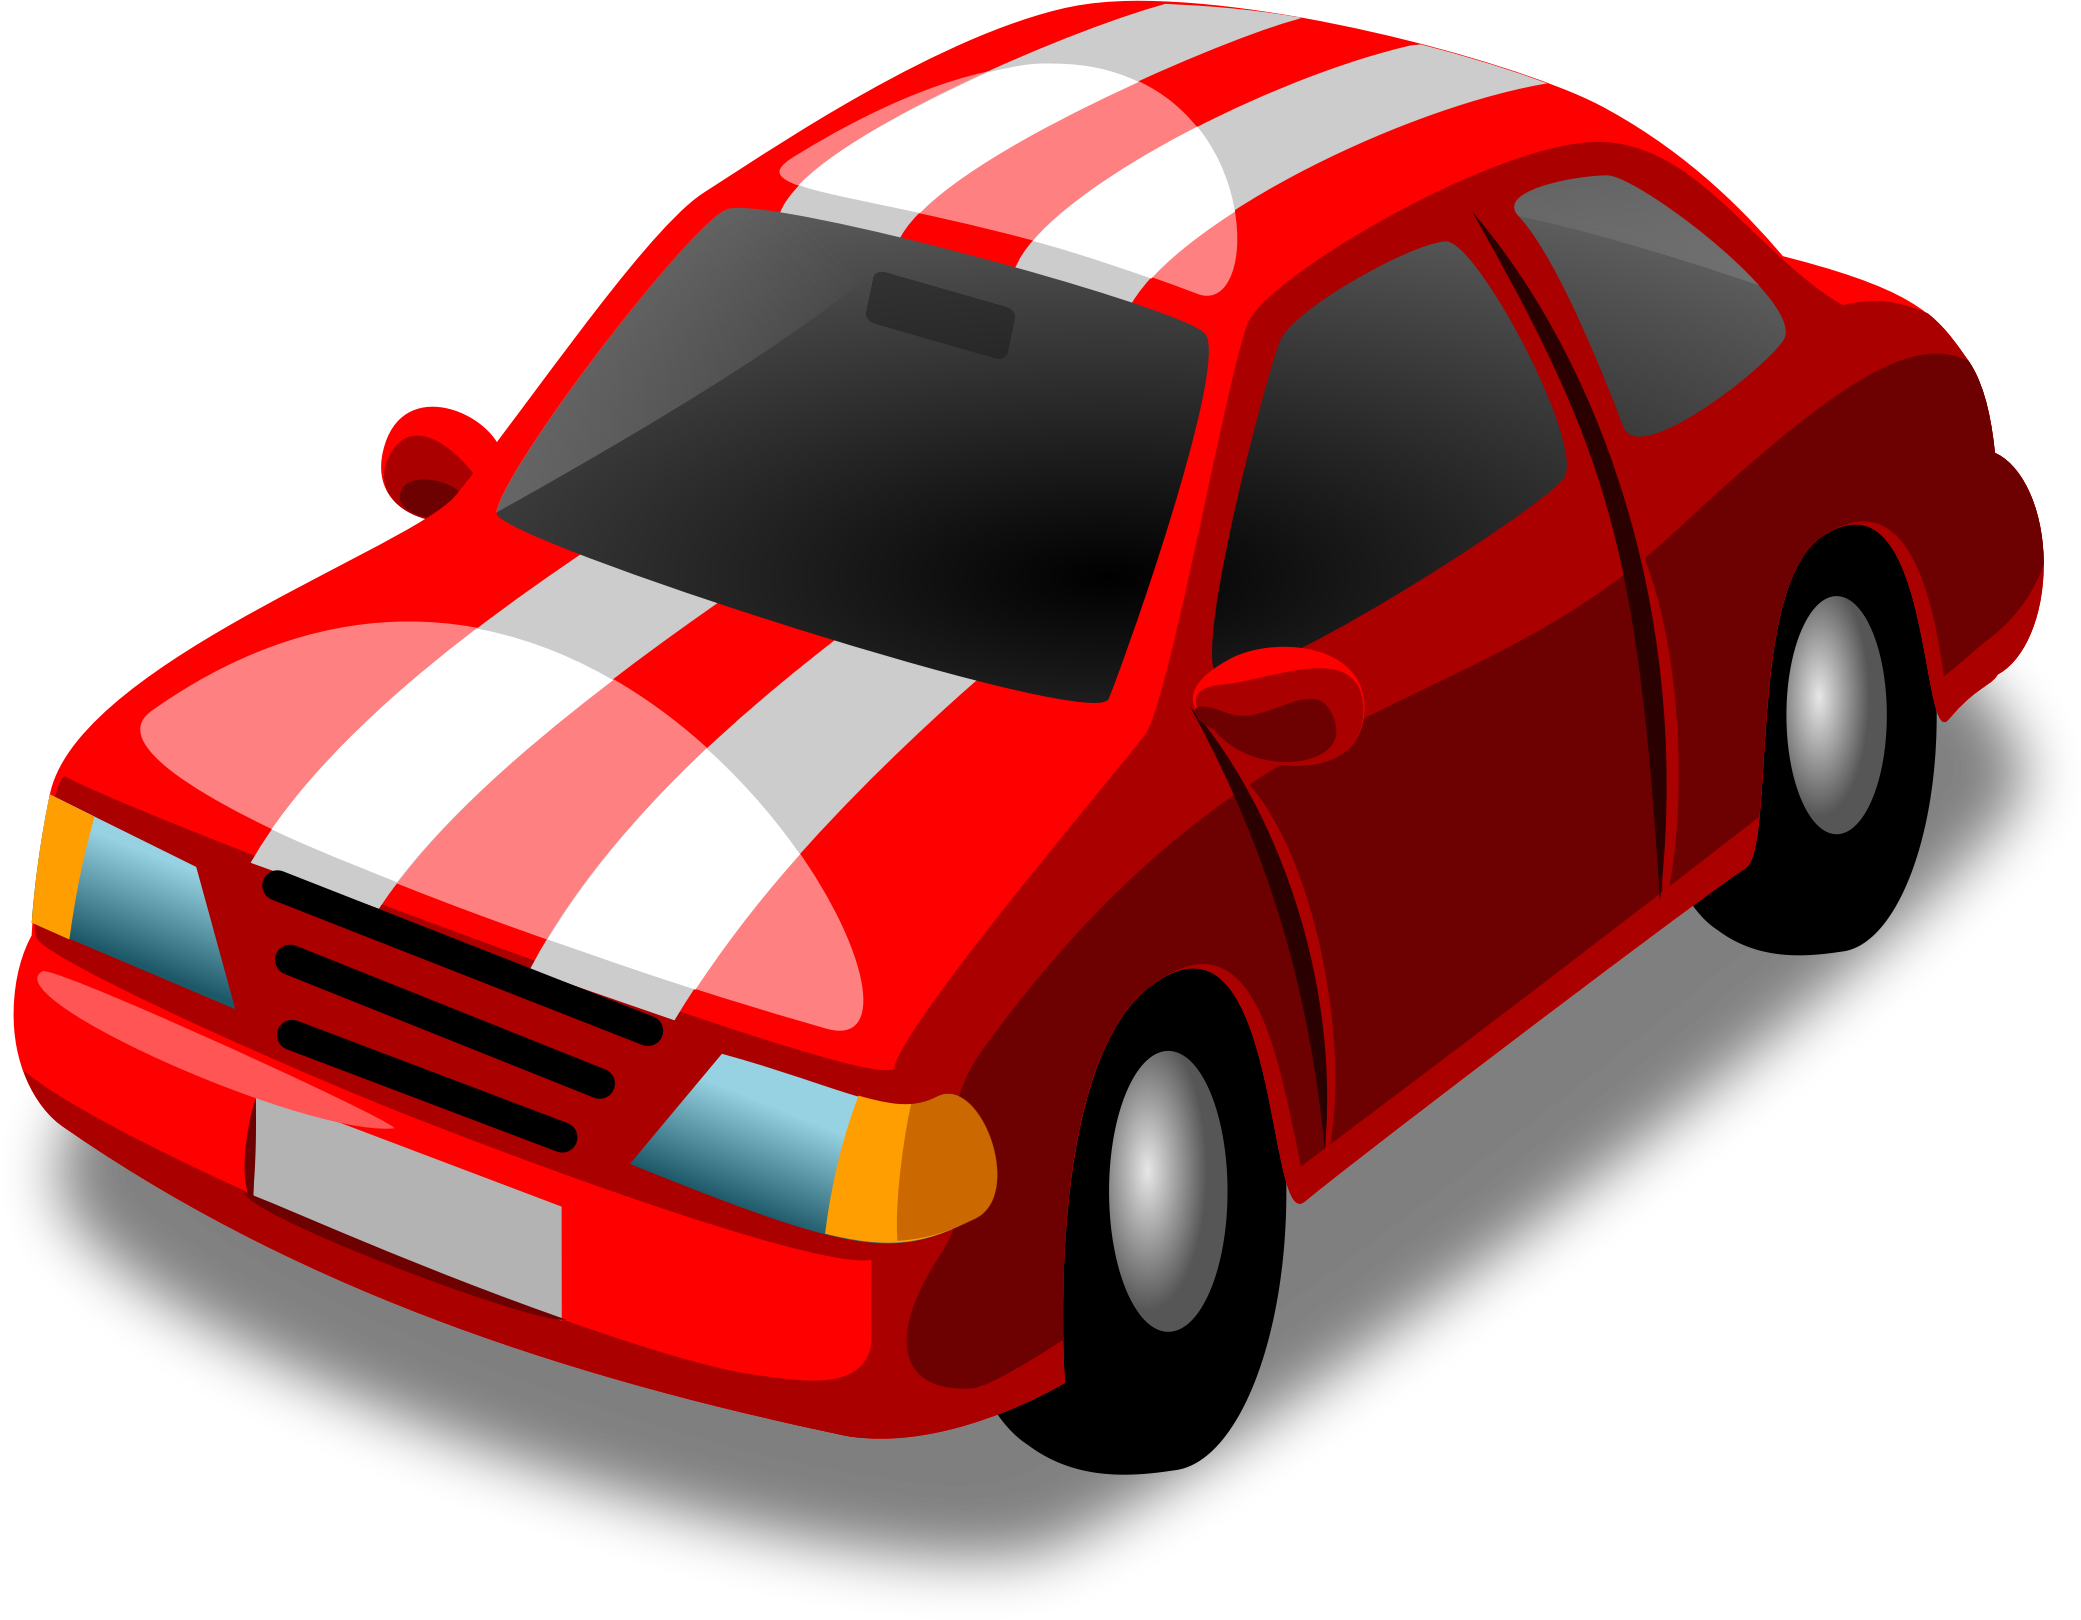 2081x1620 Red Race Car Clip Art Clipart Little Red Racing